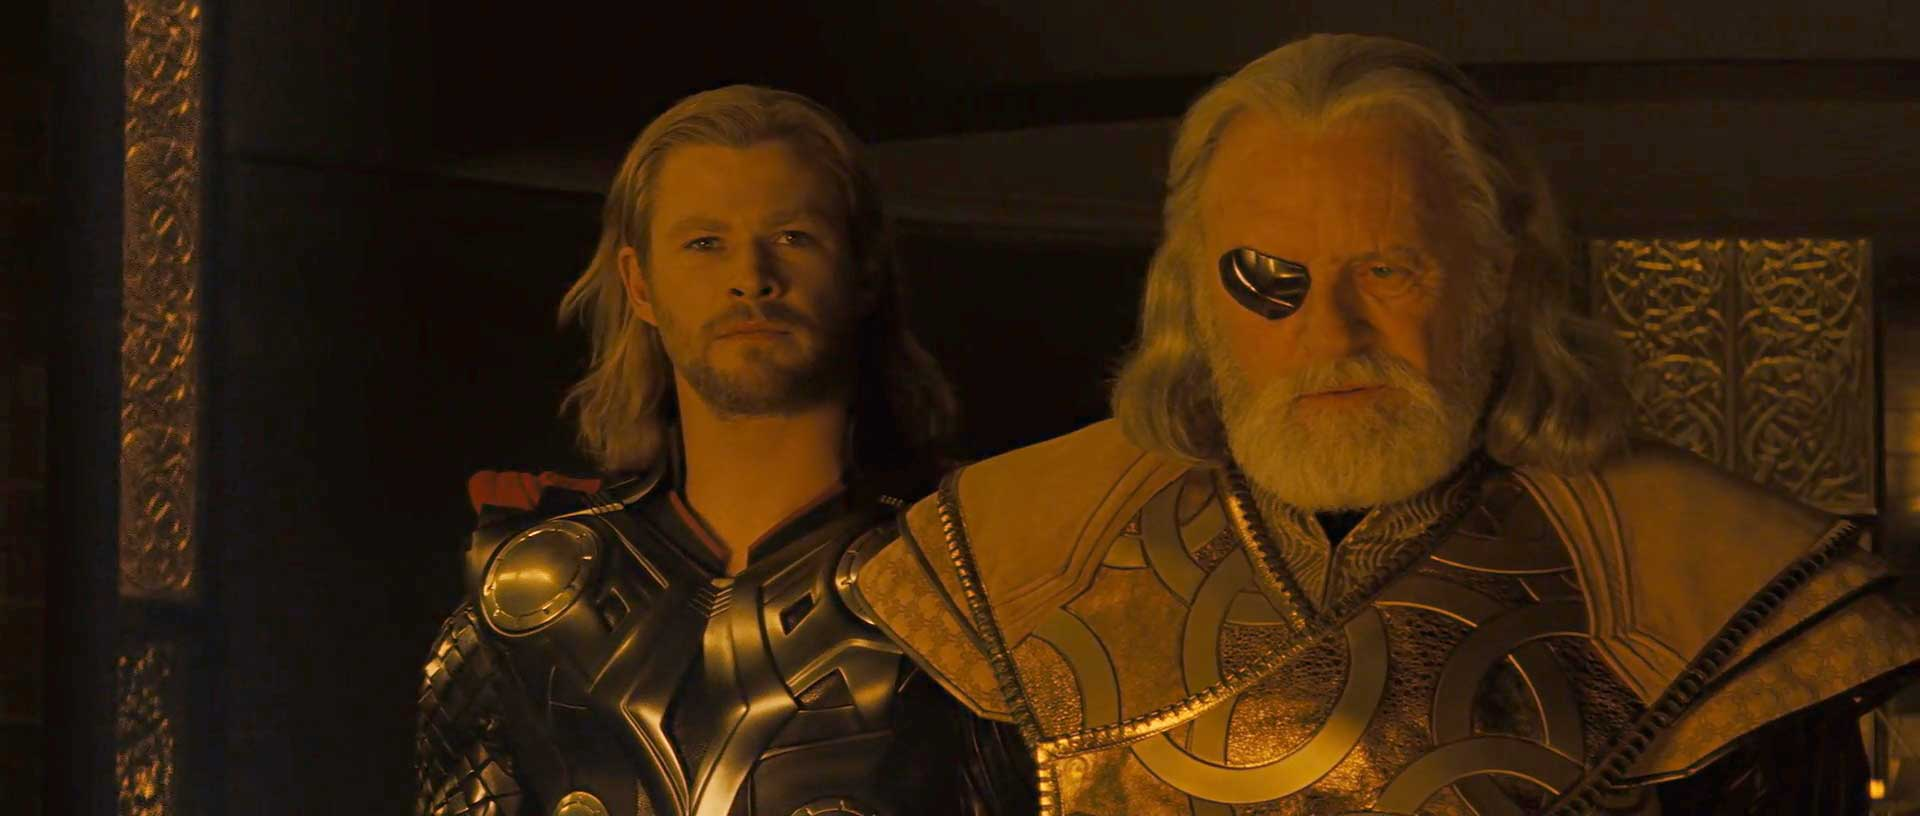 The Road To Avengers Endgame Thor - Odin Thor